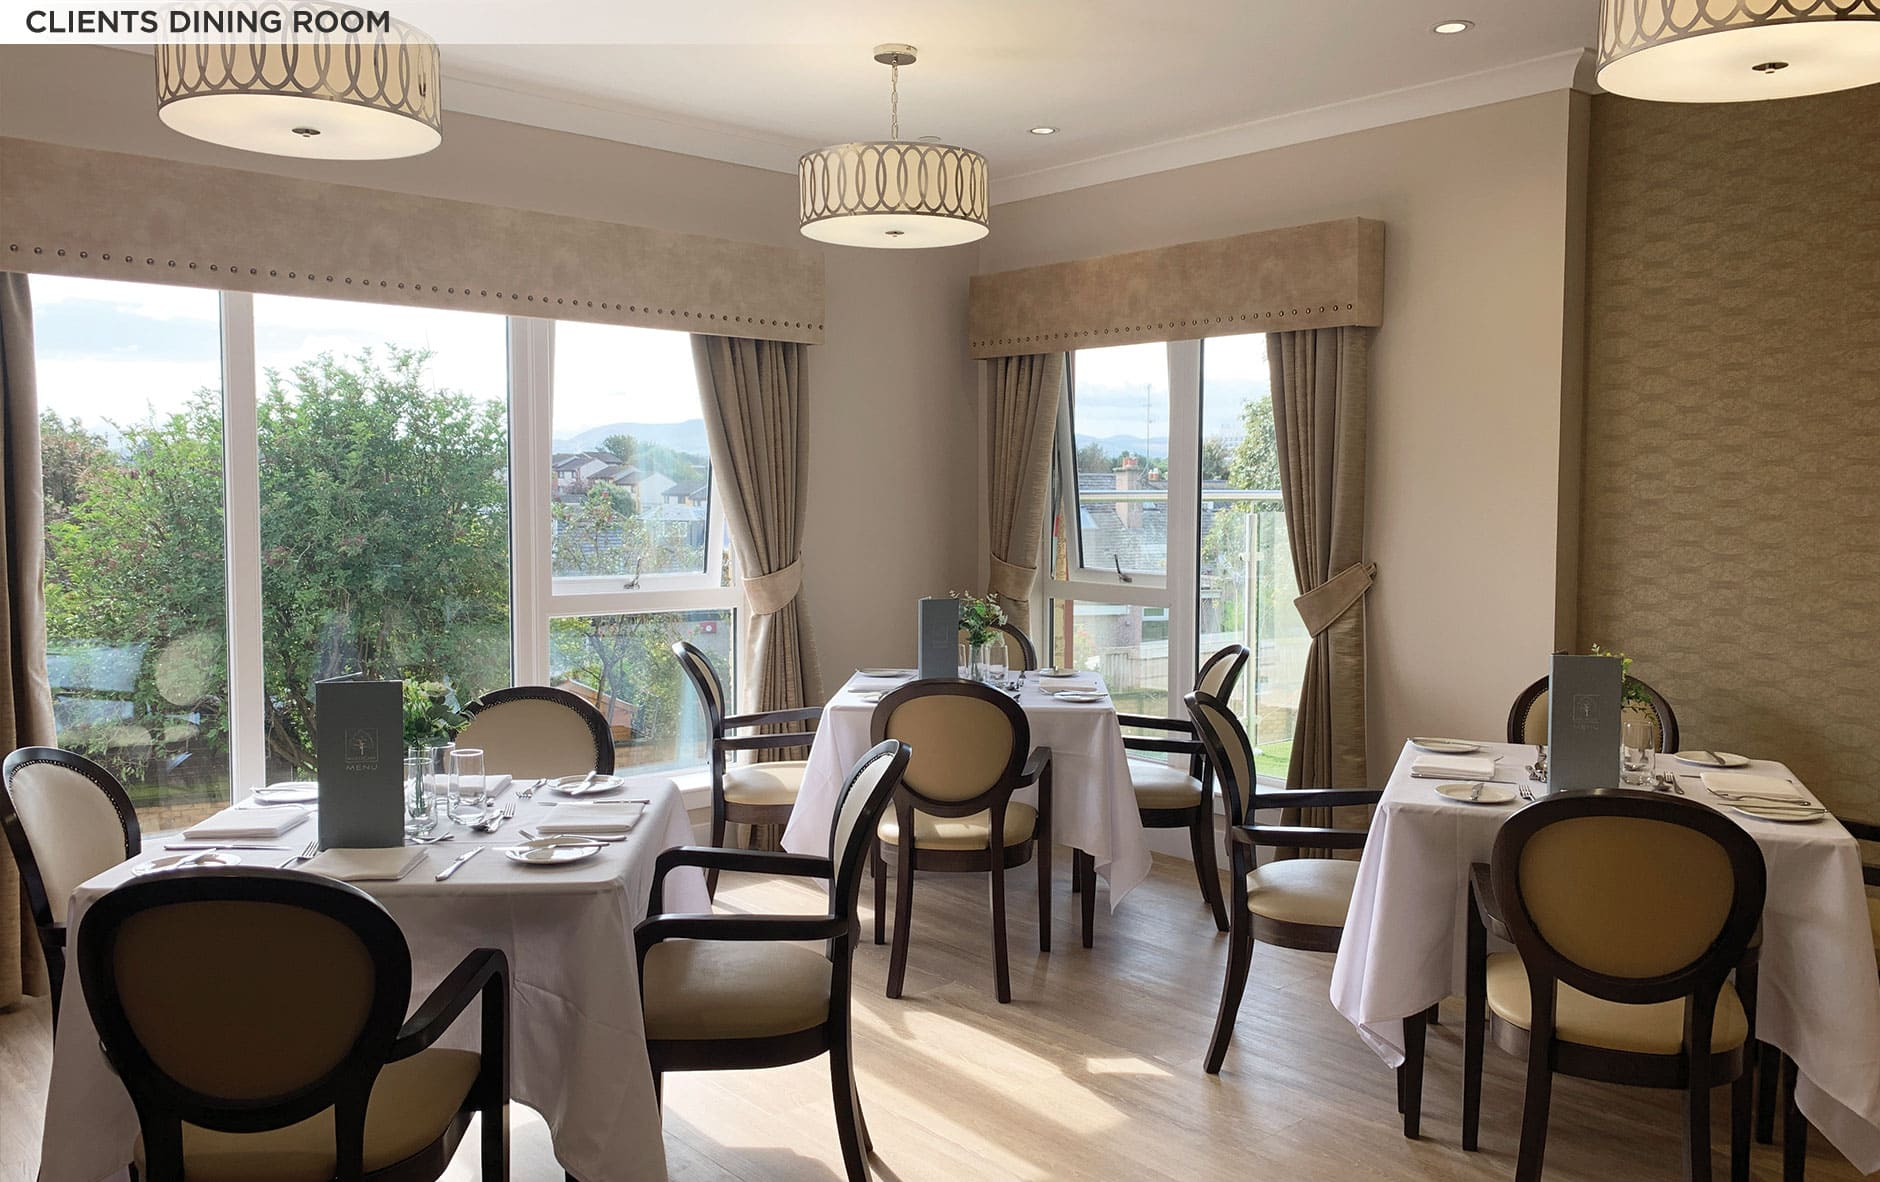 NS-clients-dining-room